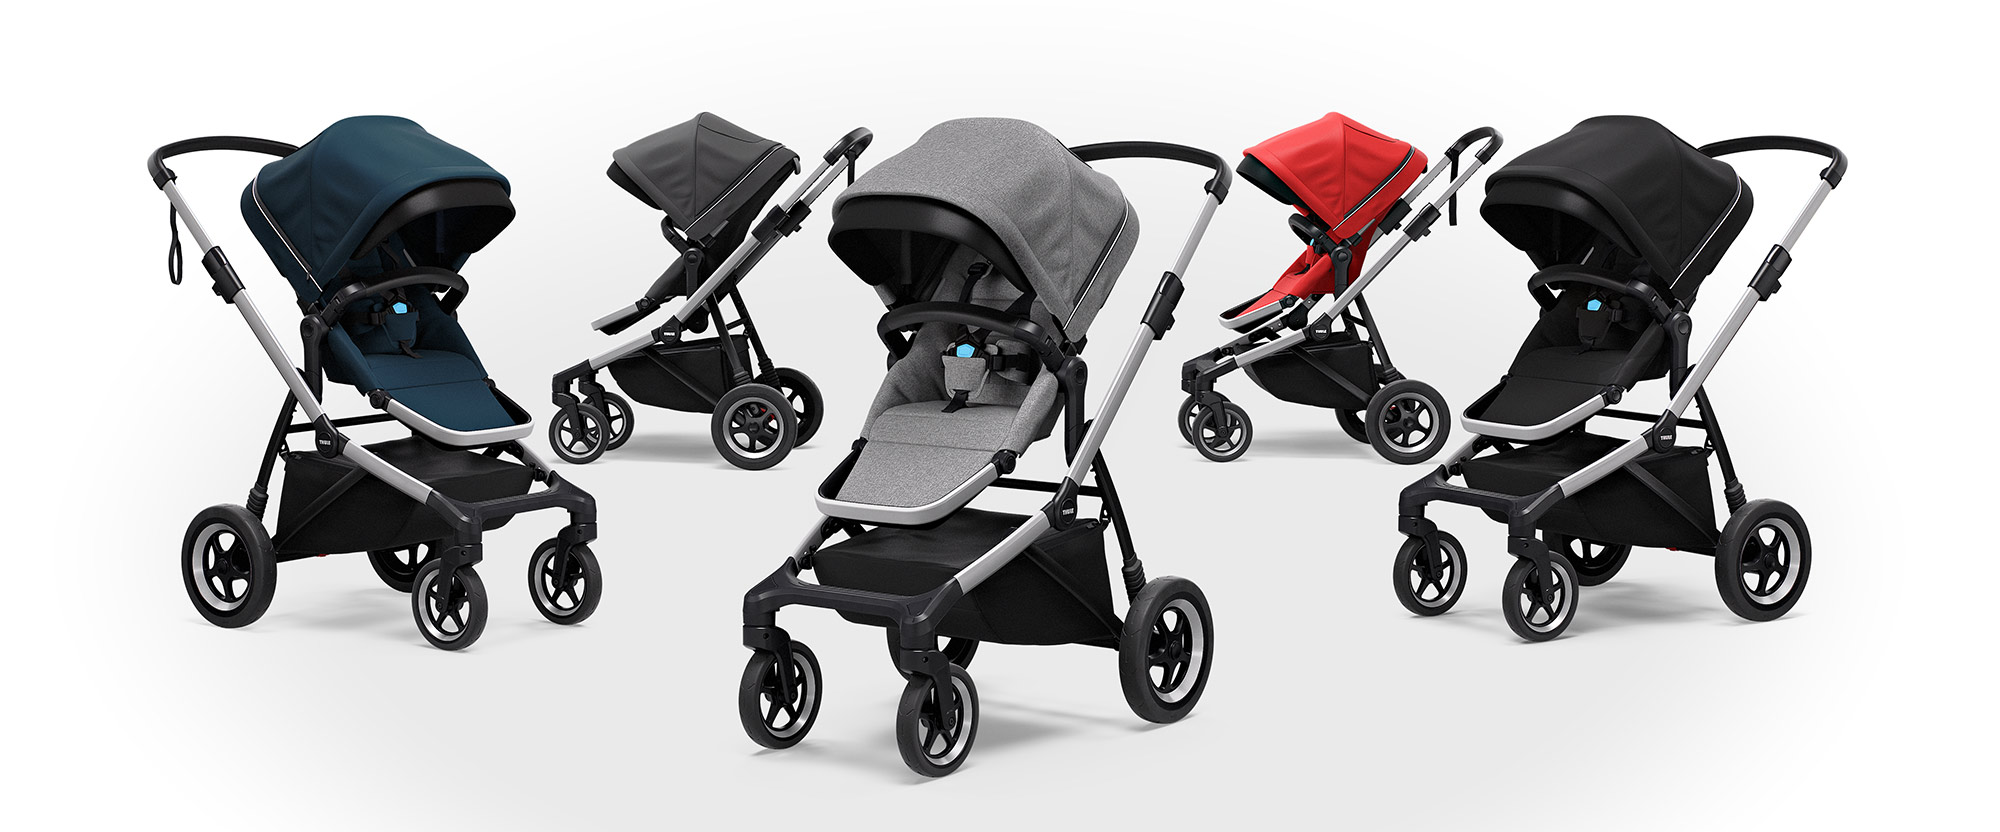 Thule Sleek stroller color range